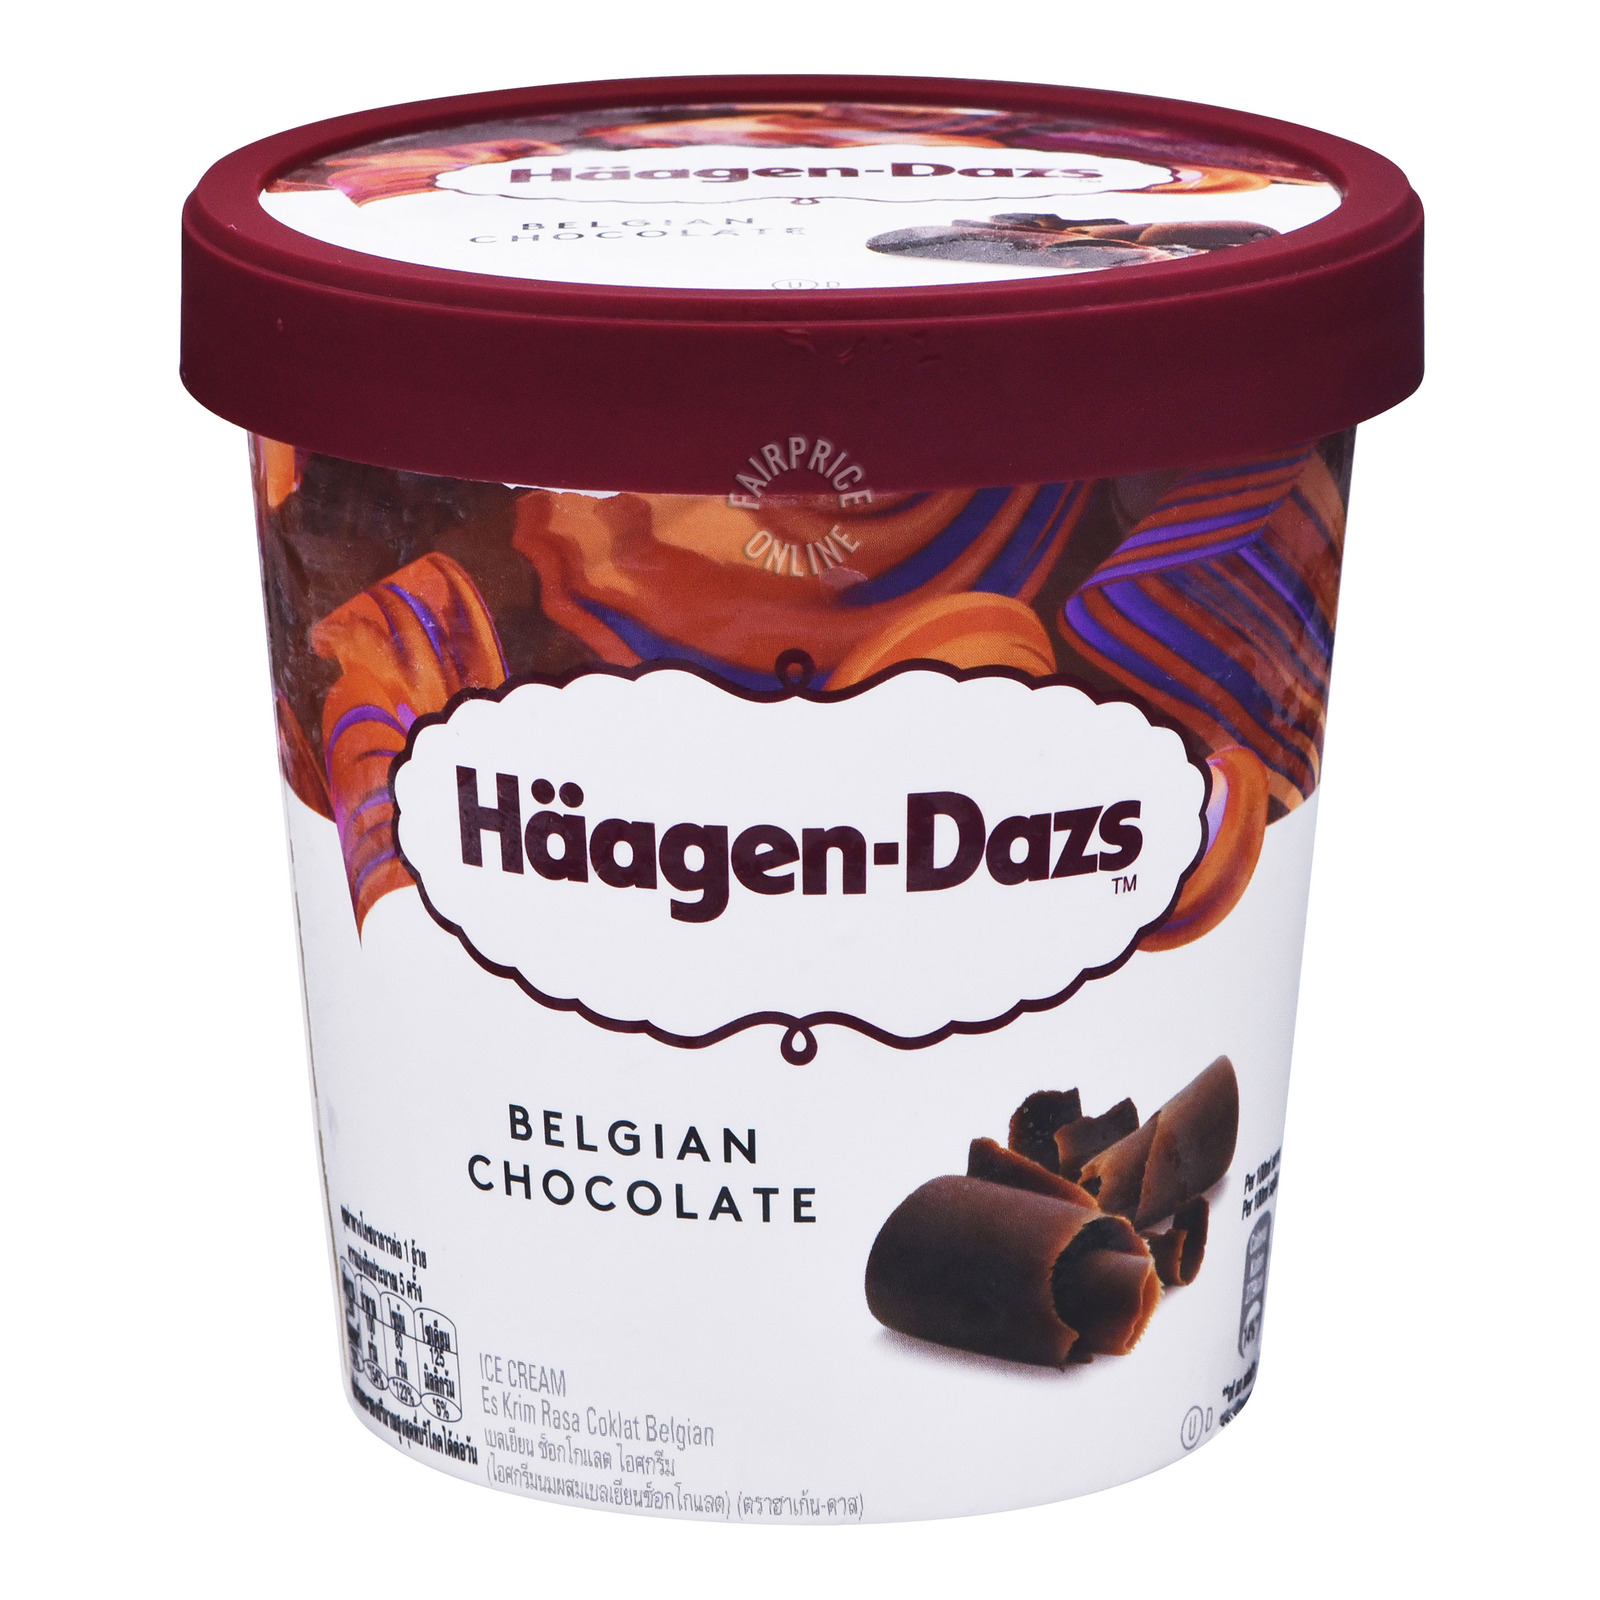 Haagen-Dazs Ice Cream - Belgian Chocolate